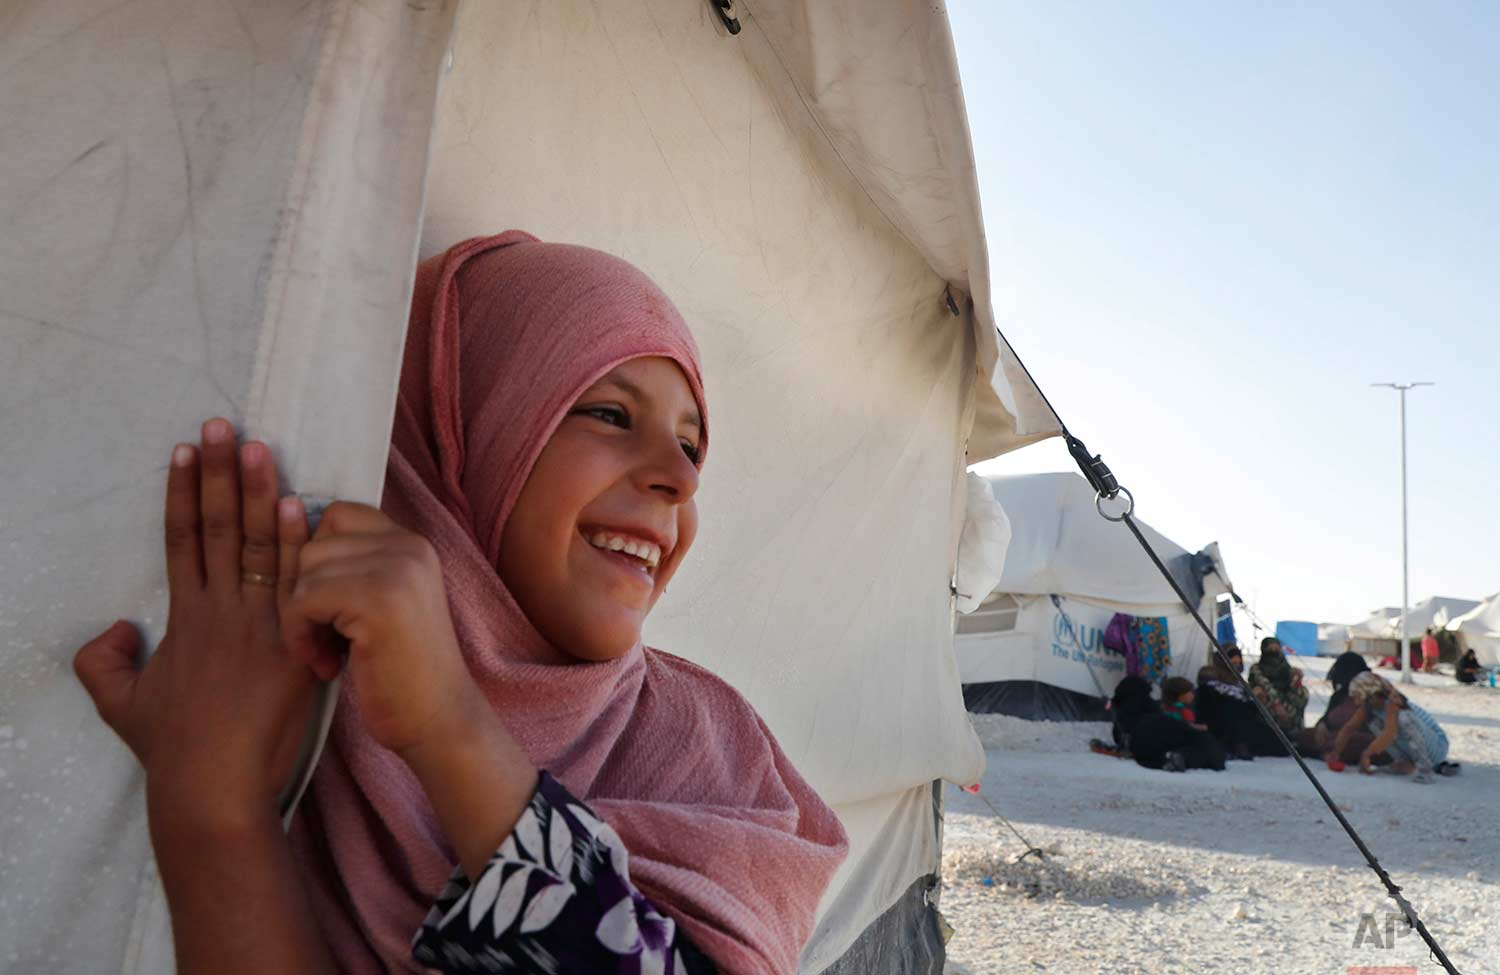 A girl who fled with her family from the battle between U.S.-backed Syrian Democratic Forces and the Islamic State militants from Raqqa city, stands outside her tent at a refugee camp, in Ain Issa town, northeast Syria, Wednesday, July 19, 2017. (AP Photo/Hussein Malla)